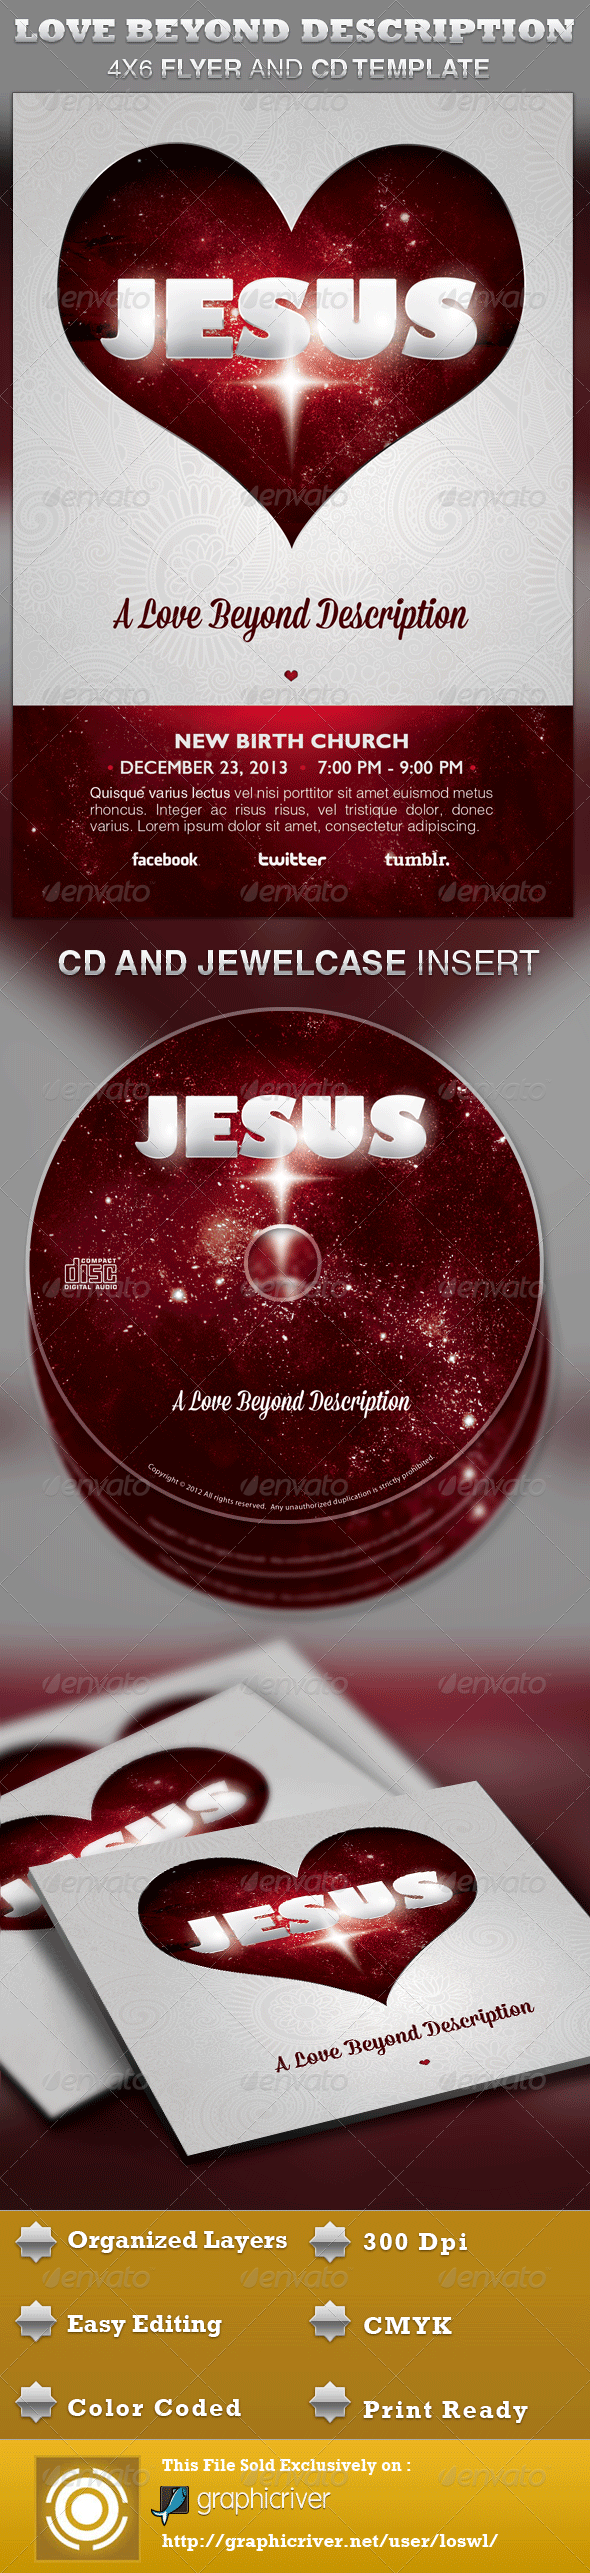 GraphicRiver A Love Beyond Description Church Flyer and CD 3261087